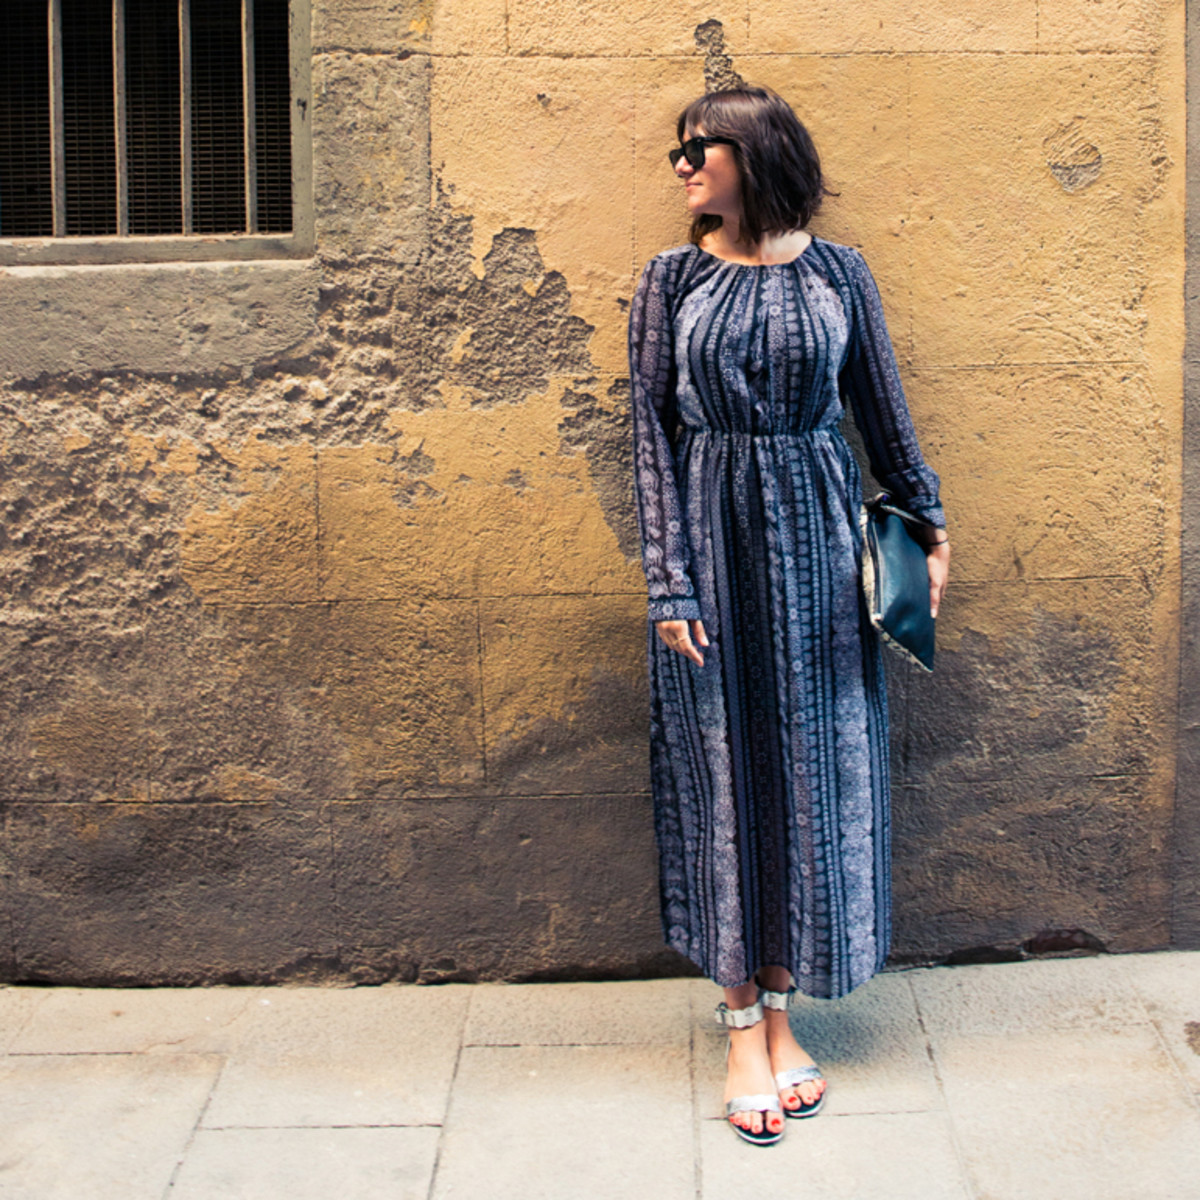 Footwear designer Isa Tapia in Barcelona in 2014 with W Hotels. Photo: W Hotels